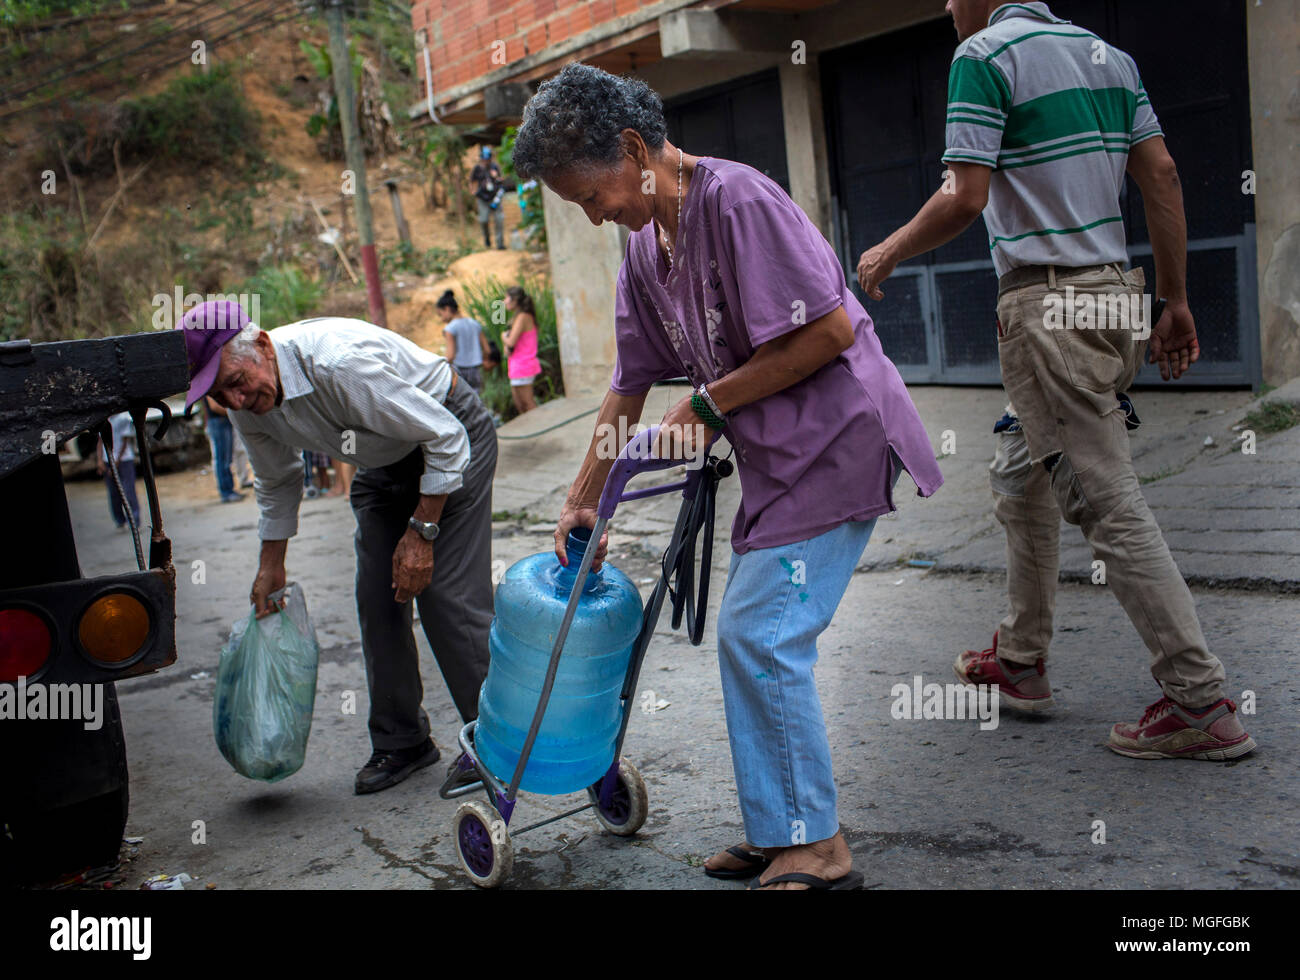 27 April 2018, Venezuela, Caracas: An elderly woman carrying a water jug on an old shopping cart through the Las Minas quarter as she looks for a source of water. The supply of drinking water was interrupted 20 days ago in this quarter. Numerous people are protesting in several cities in the country. The protests were summoned due to problems with supply through public companies. Photo: Manu Quintero/dpa - Stock Image